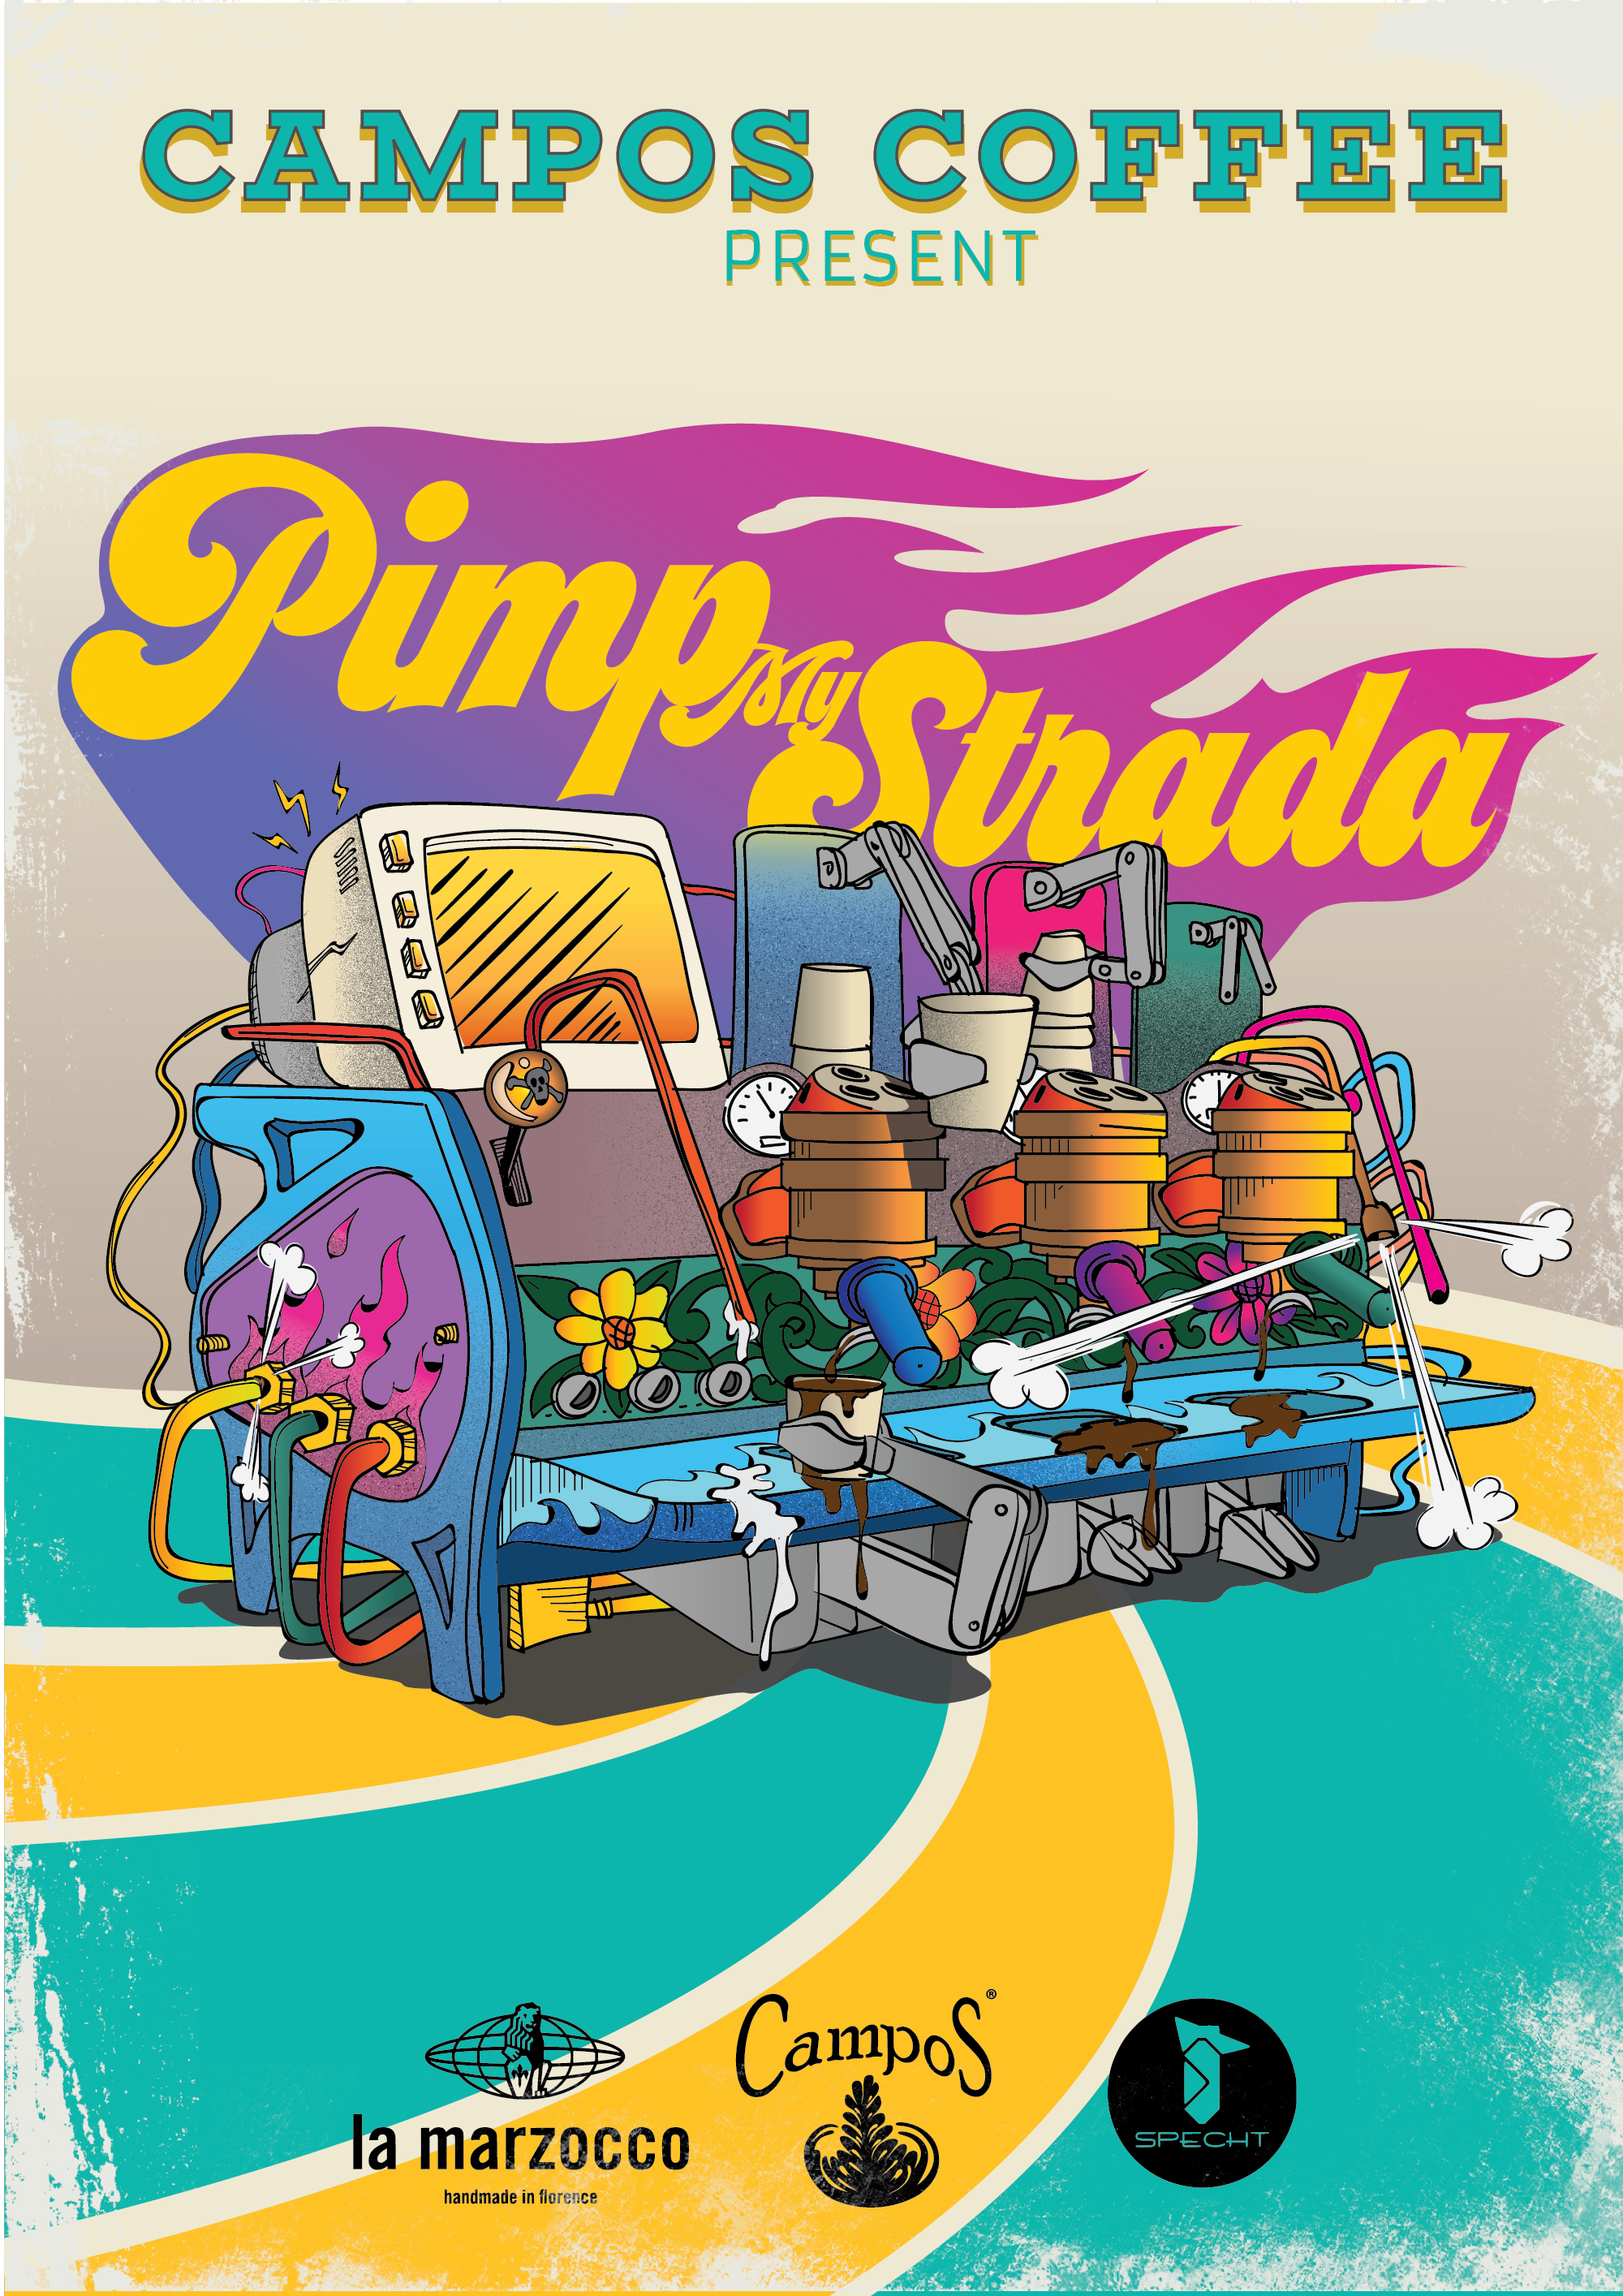 Pimp my Strada illustration (for A4, A3 and T-shirts)